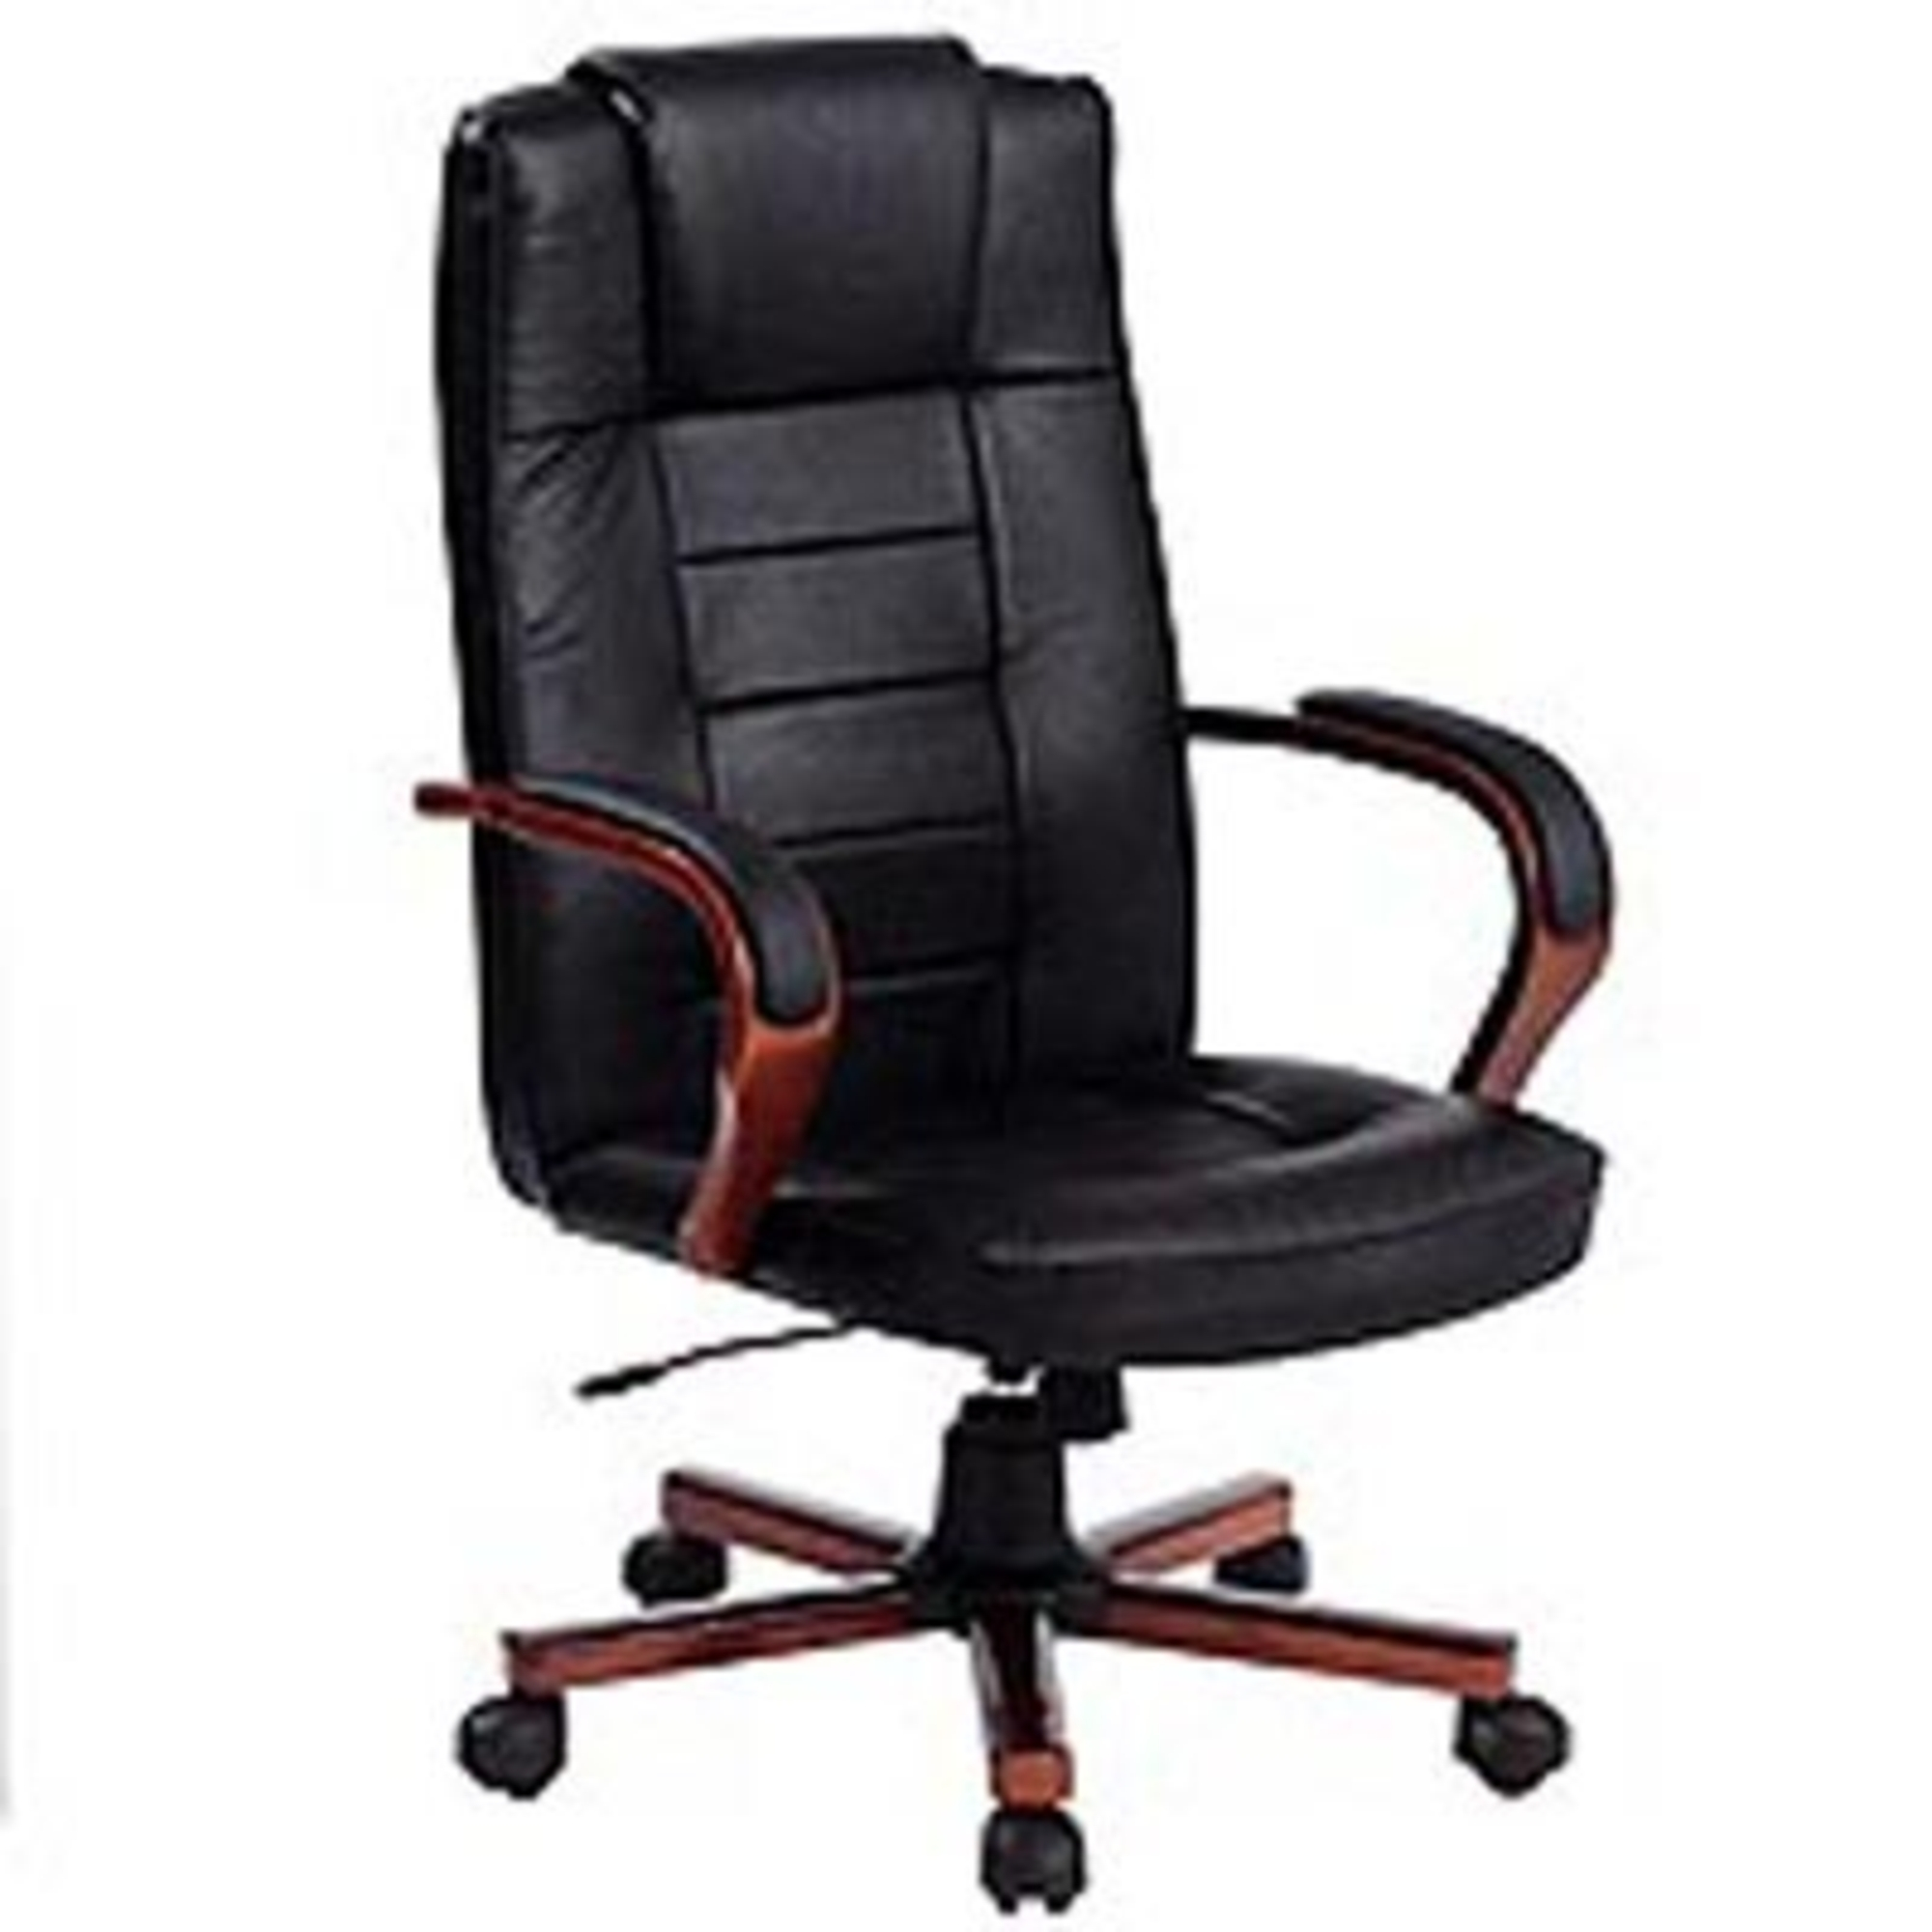 fauteuil de bureau gamer avis id e inspirante pour la conception de la maison. Black Bedroom Furniture Sets. Home Design Ideas